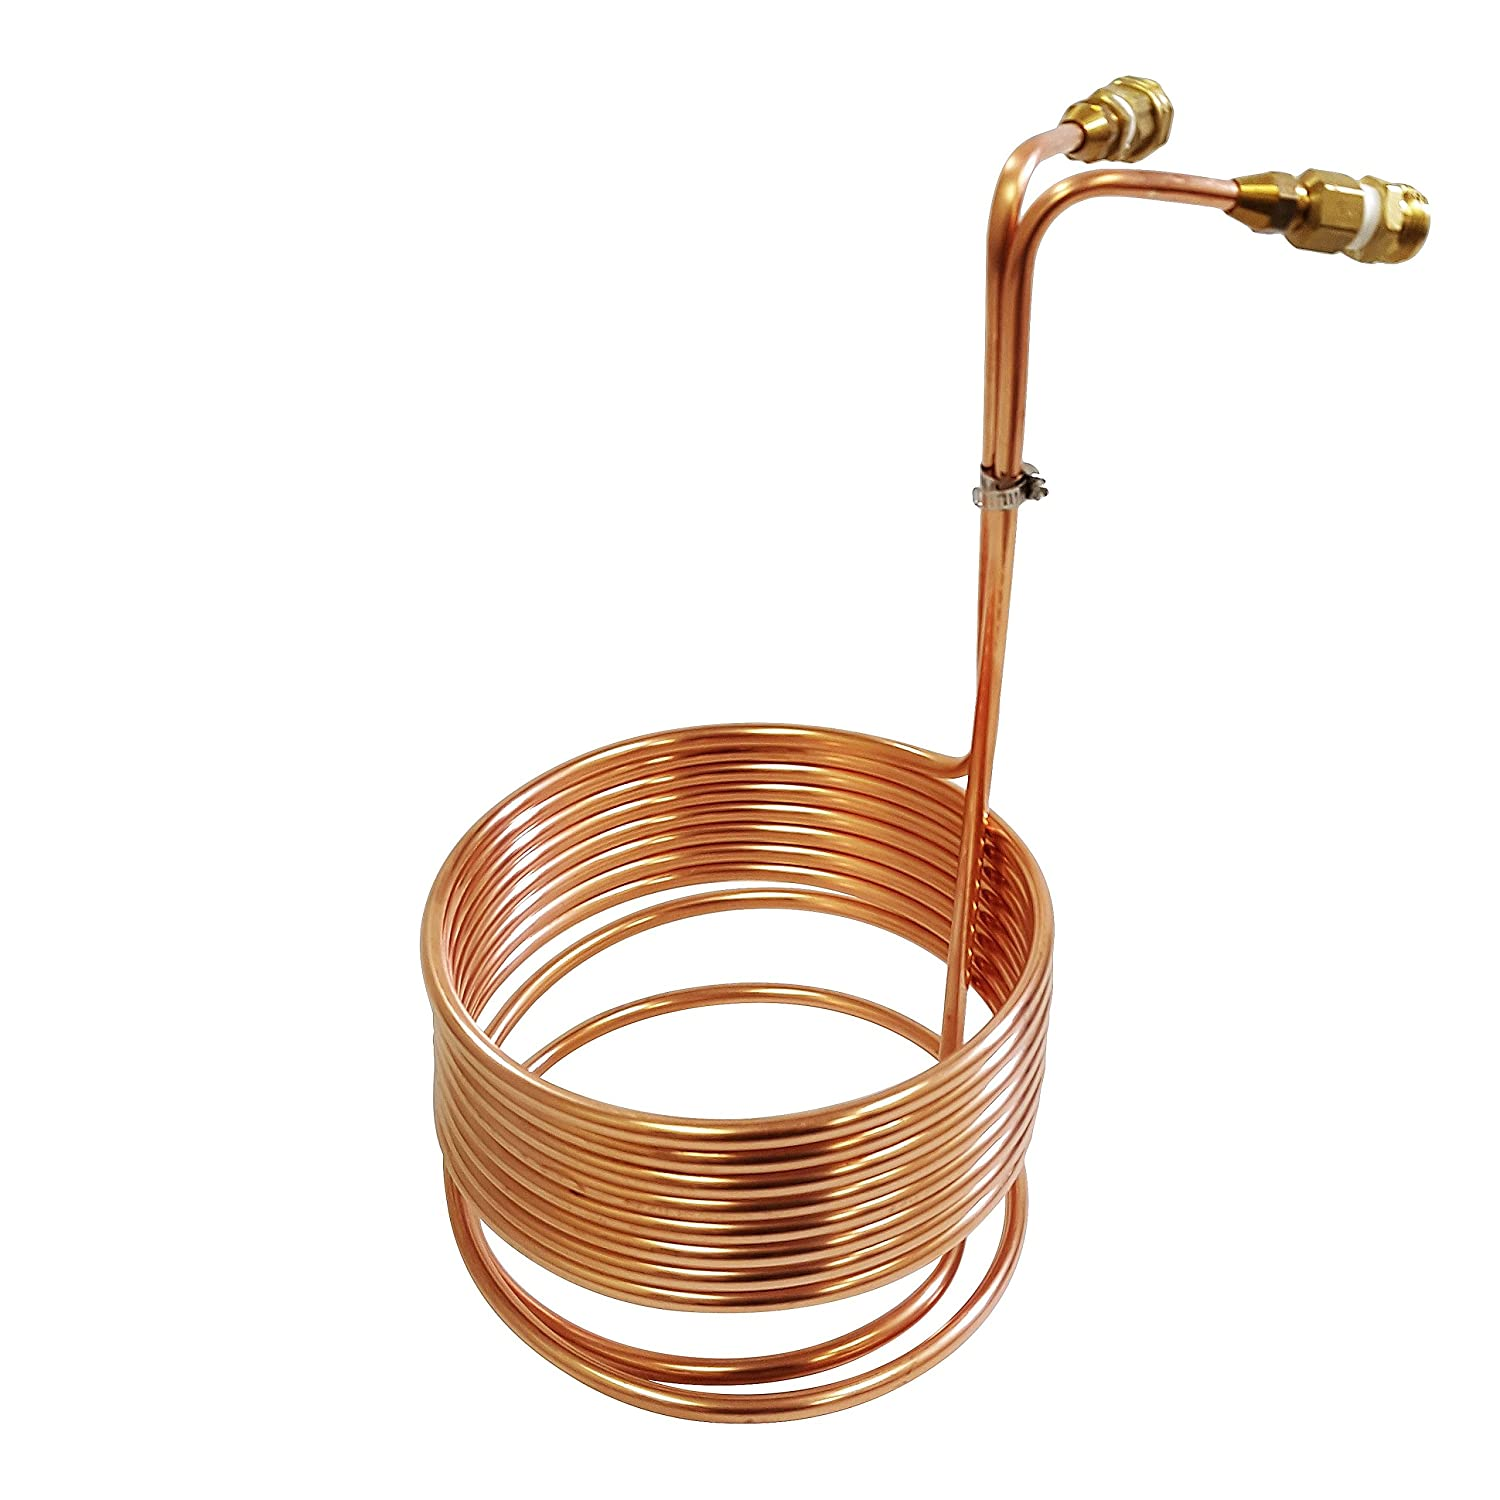 ny brew supply wort chiller with garden hose fittings